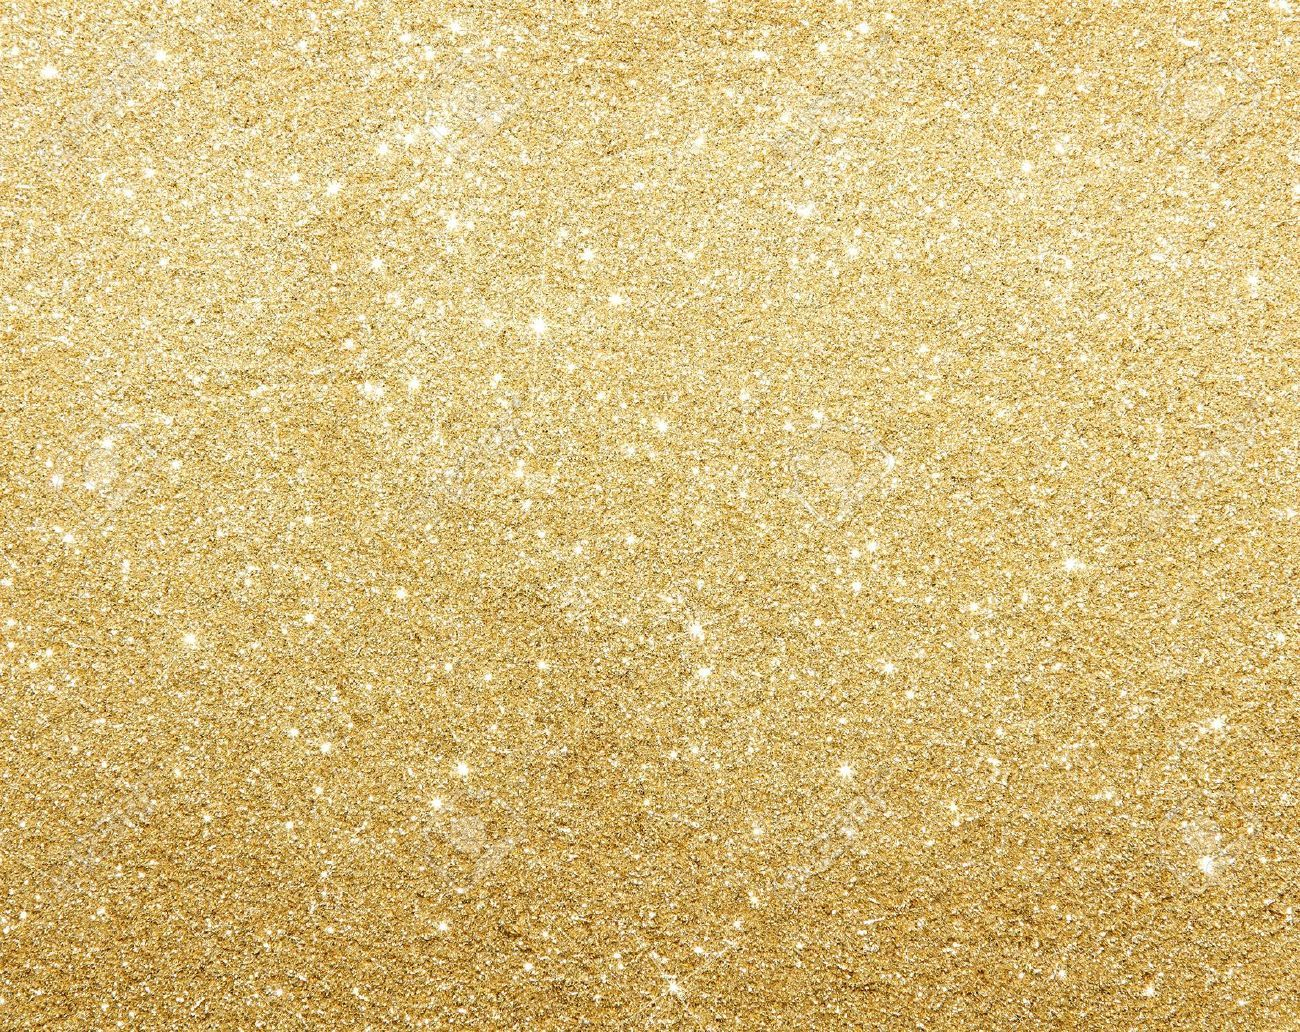 gold new year backgrounds happy holidays golden backgrounds jpg 1300x1032 sparkly new years background